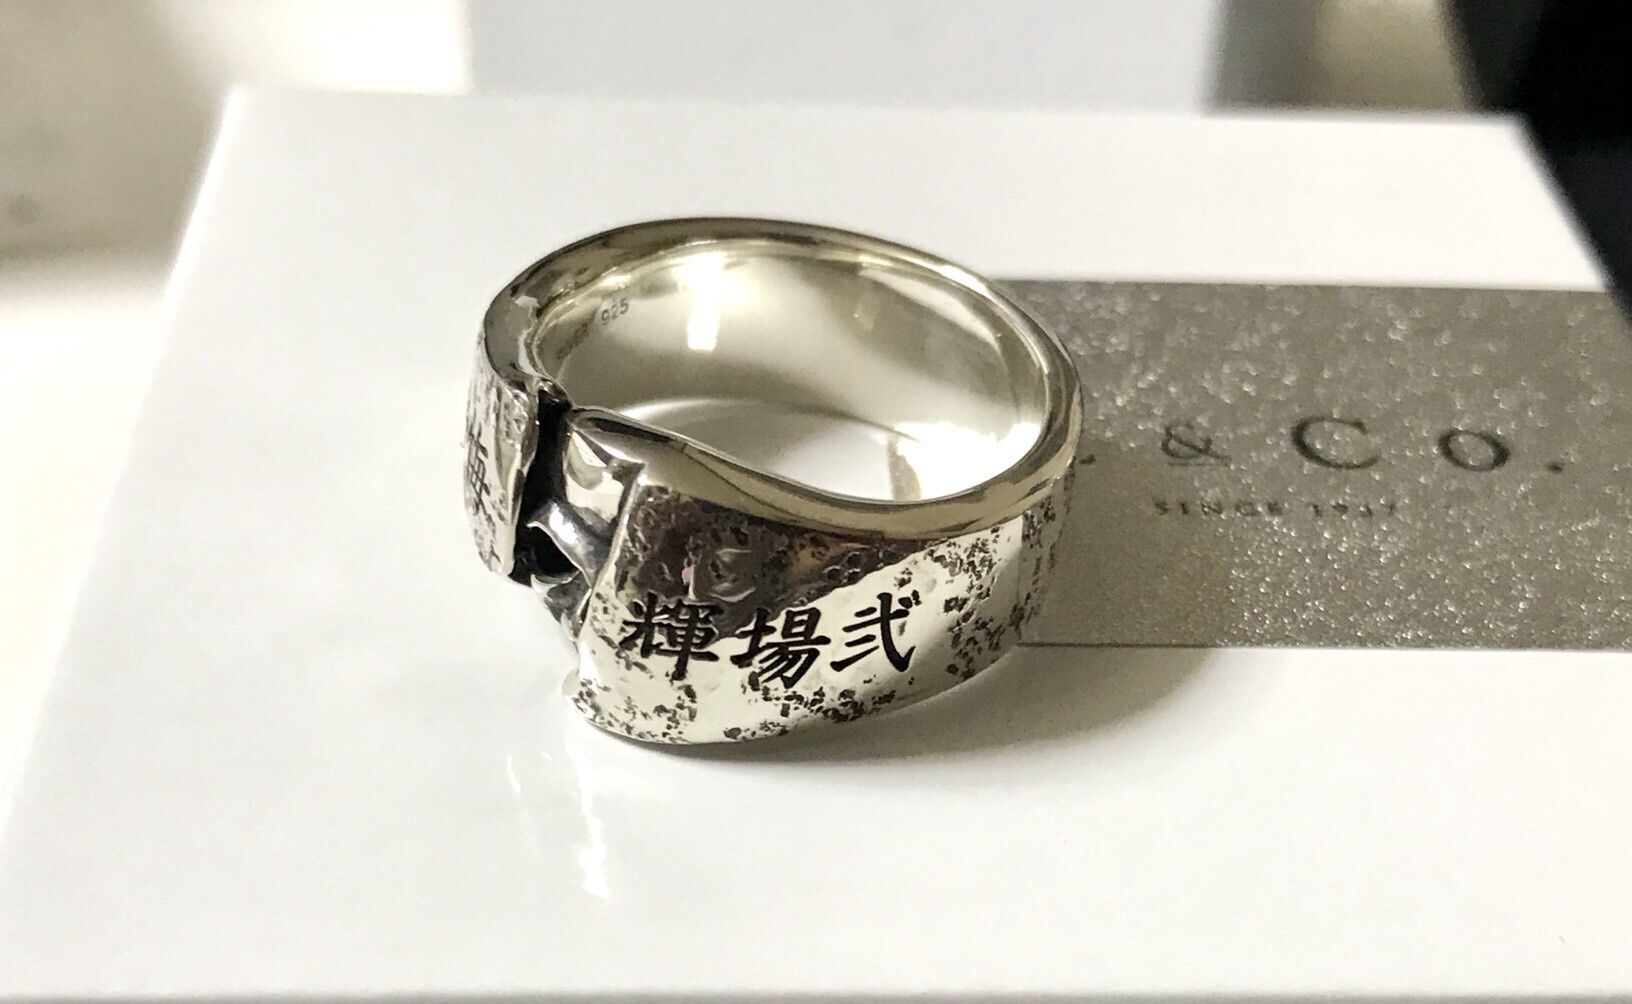 Engraved Samurai ring example